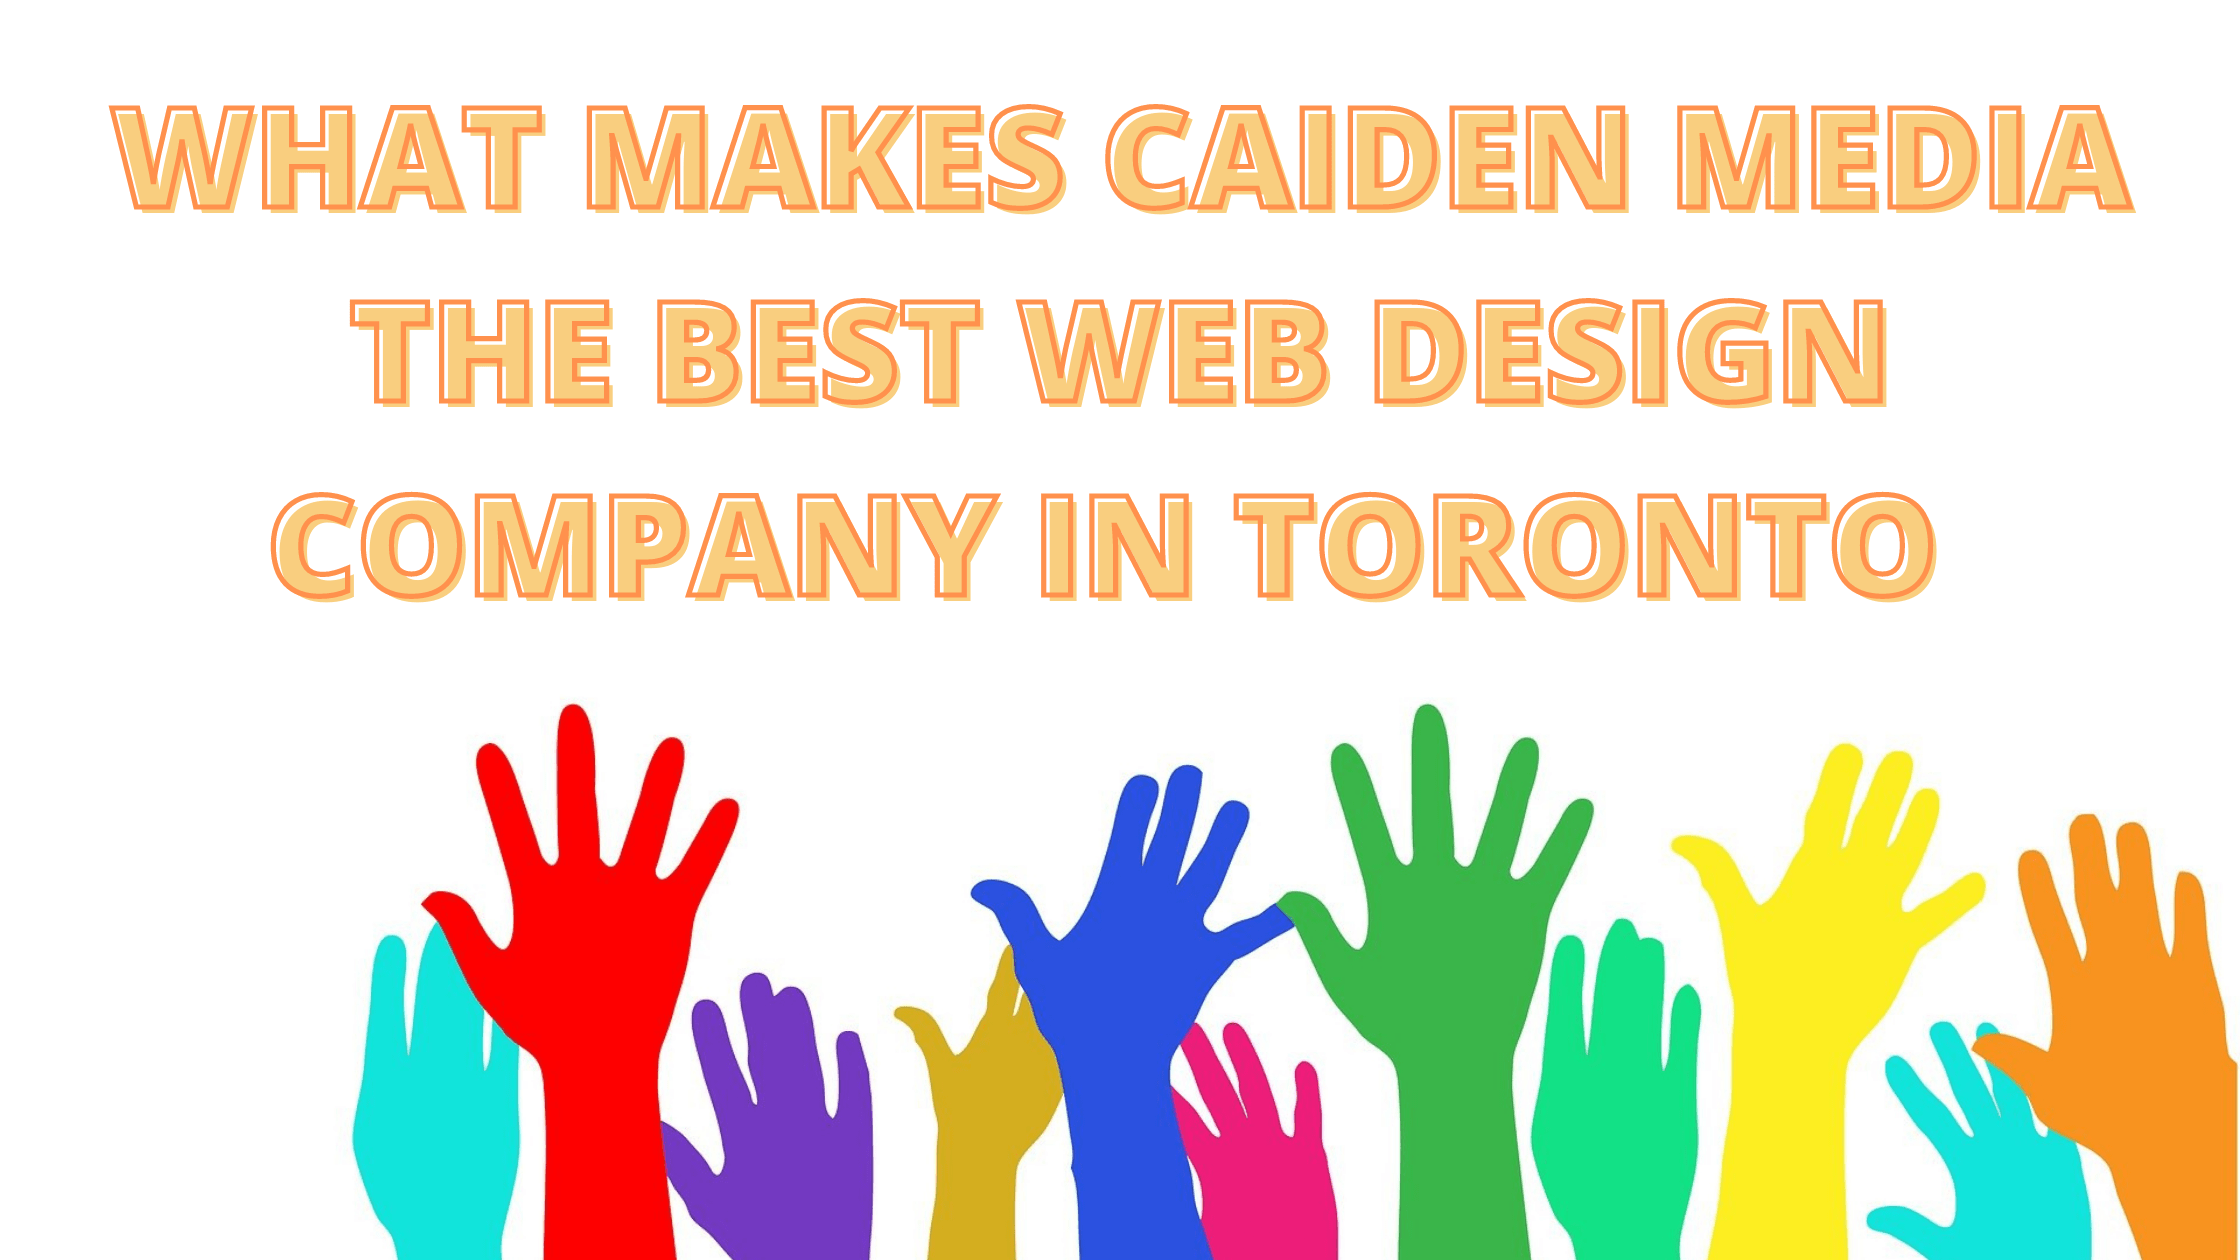 Web Design Company In Toronto